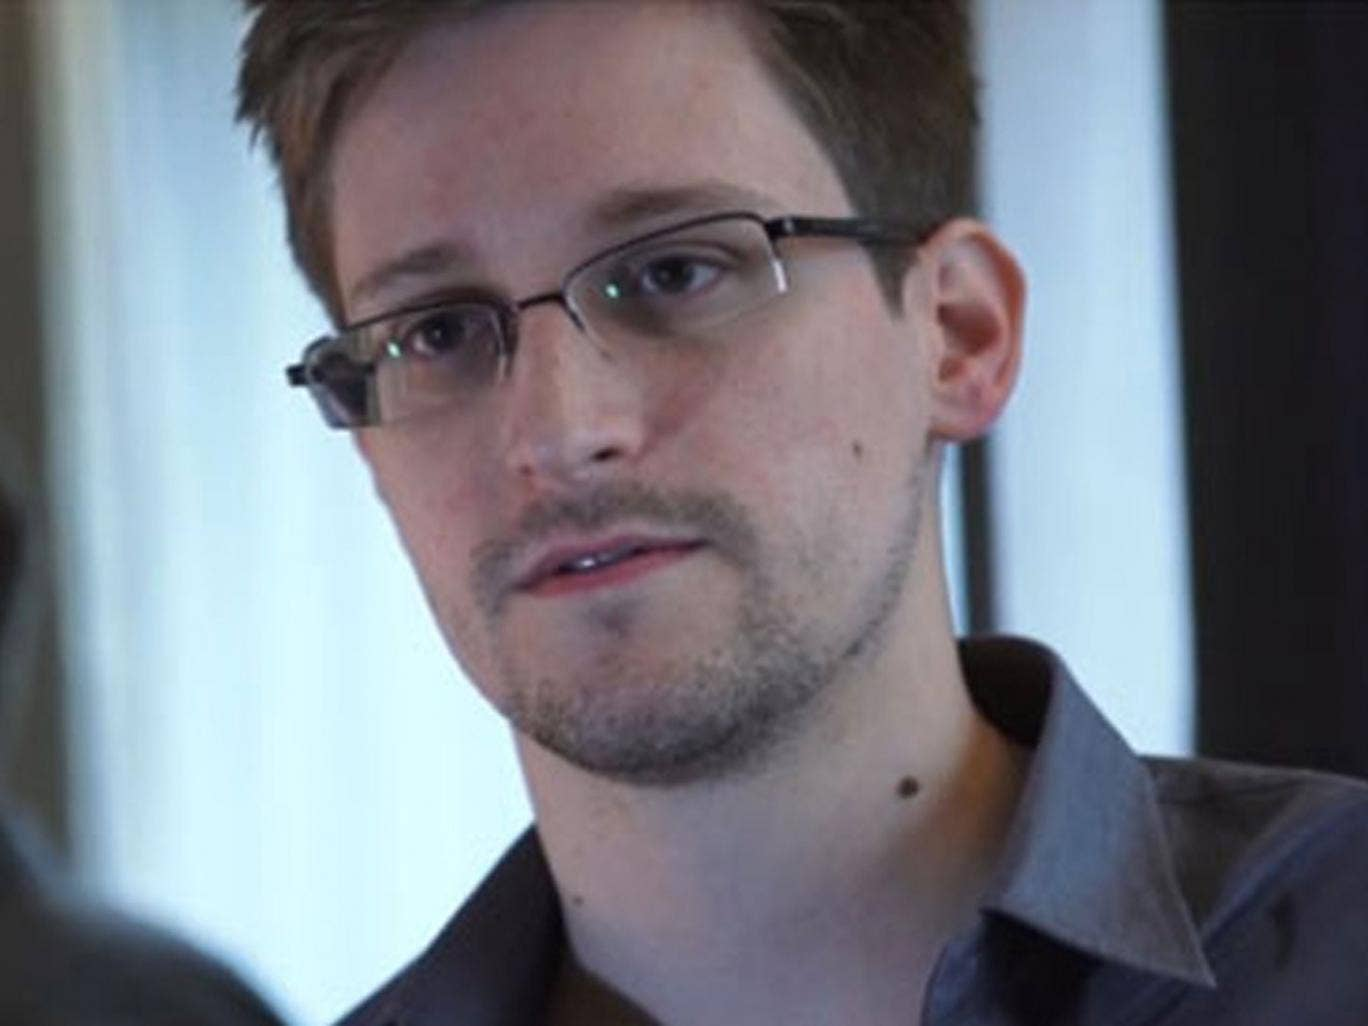 Mr Snowden, who leaked details of US internet surveillance to a British newspaper, posted the messages under a pseudonym during the eight years that he worked for the CIA and the NSA.